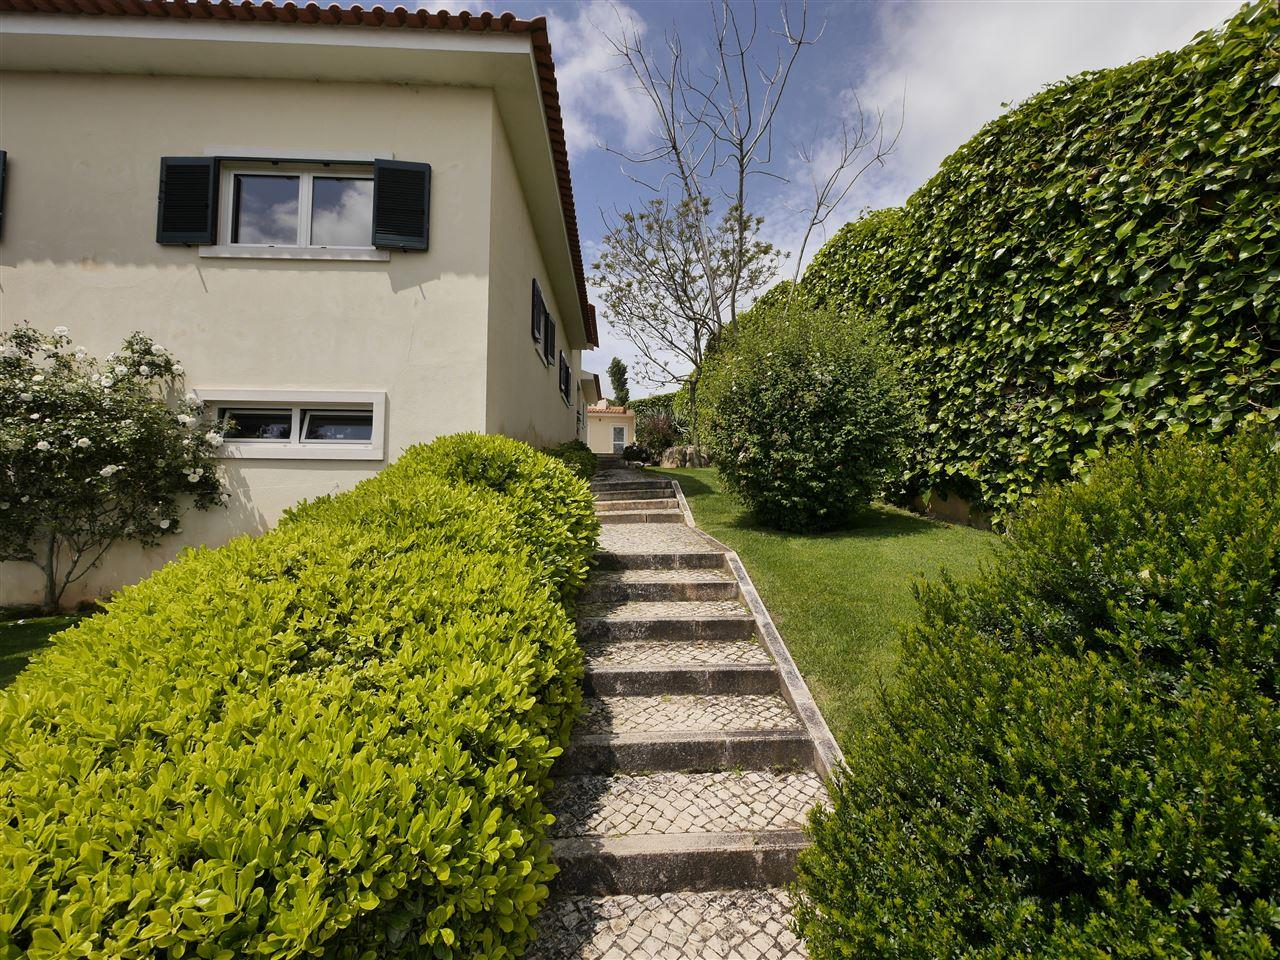 Single Family Home for Sale at House, 4 bedrooms, for Sale Oeiras, Lisboa 2730-205 Portugal